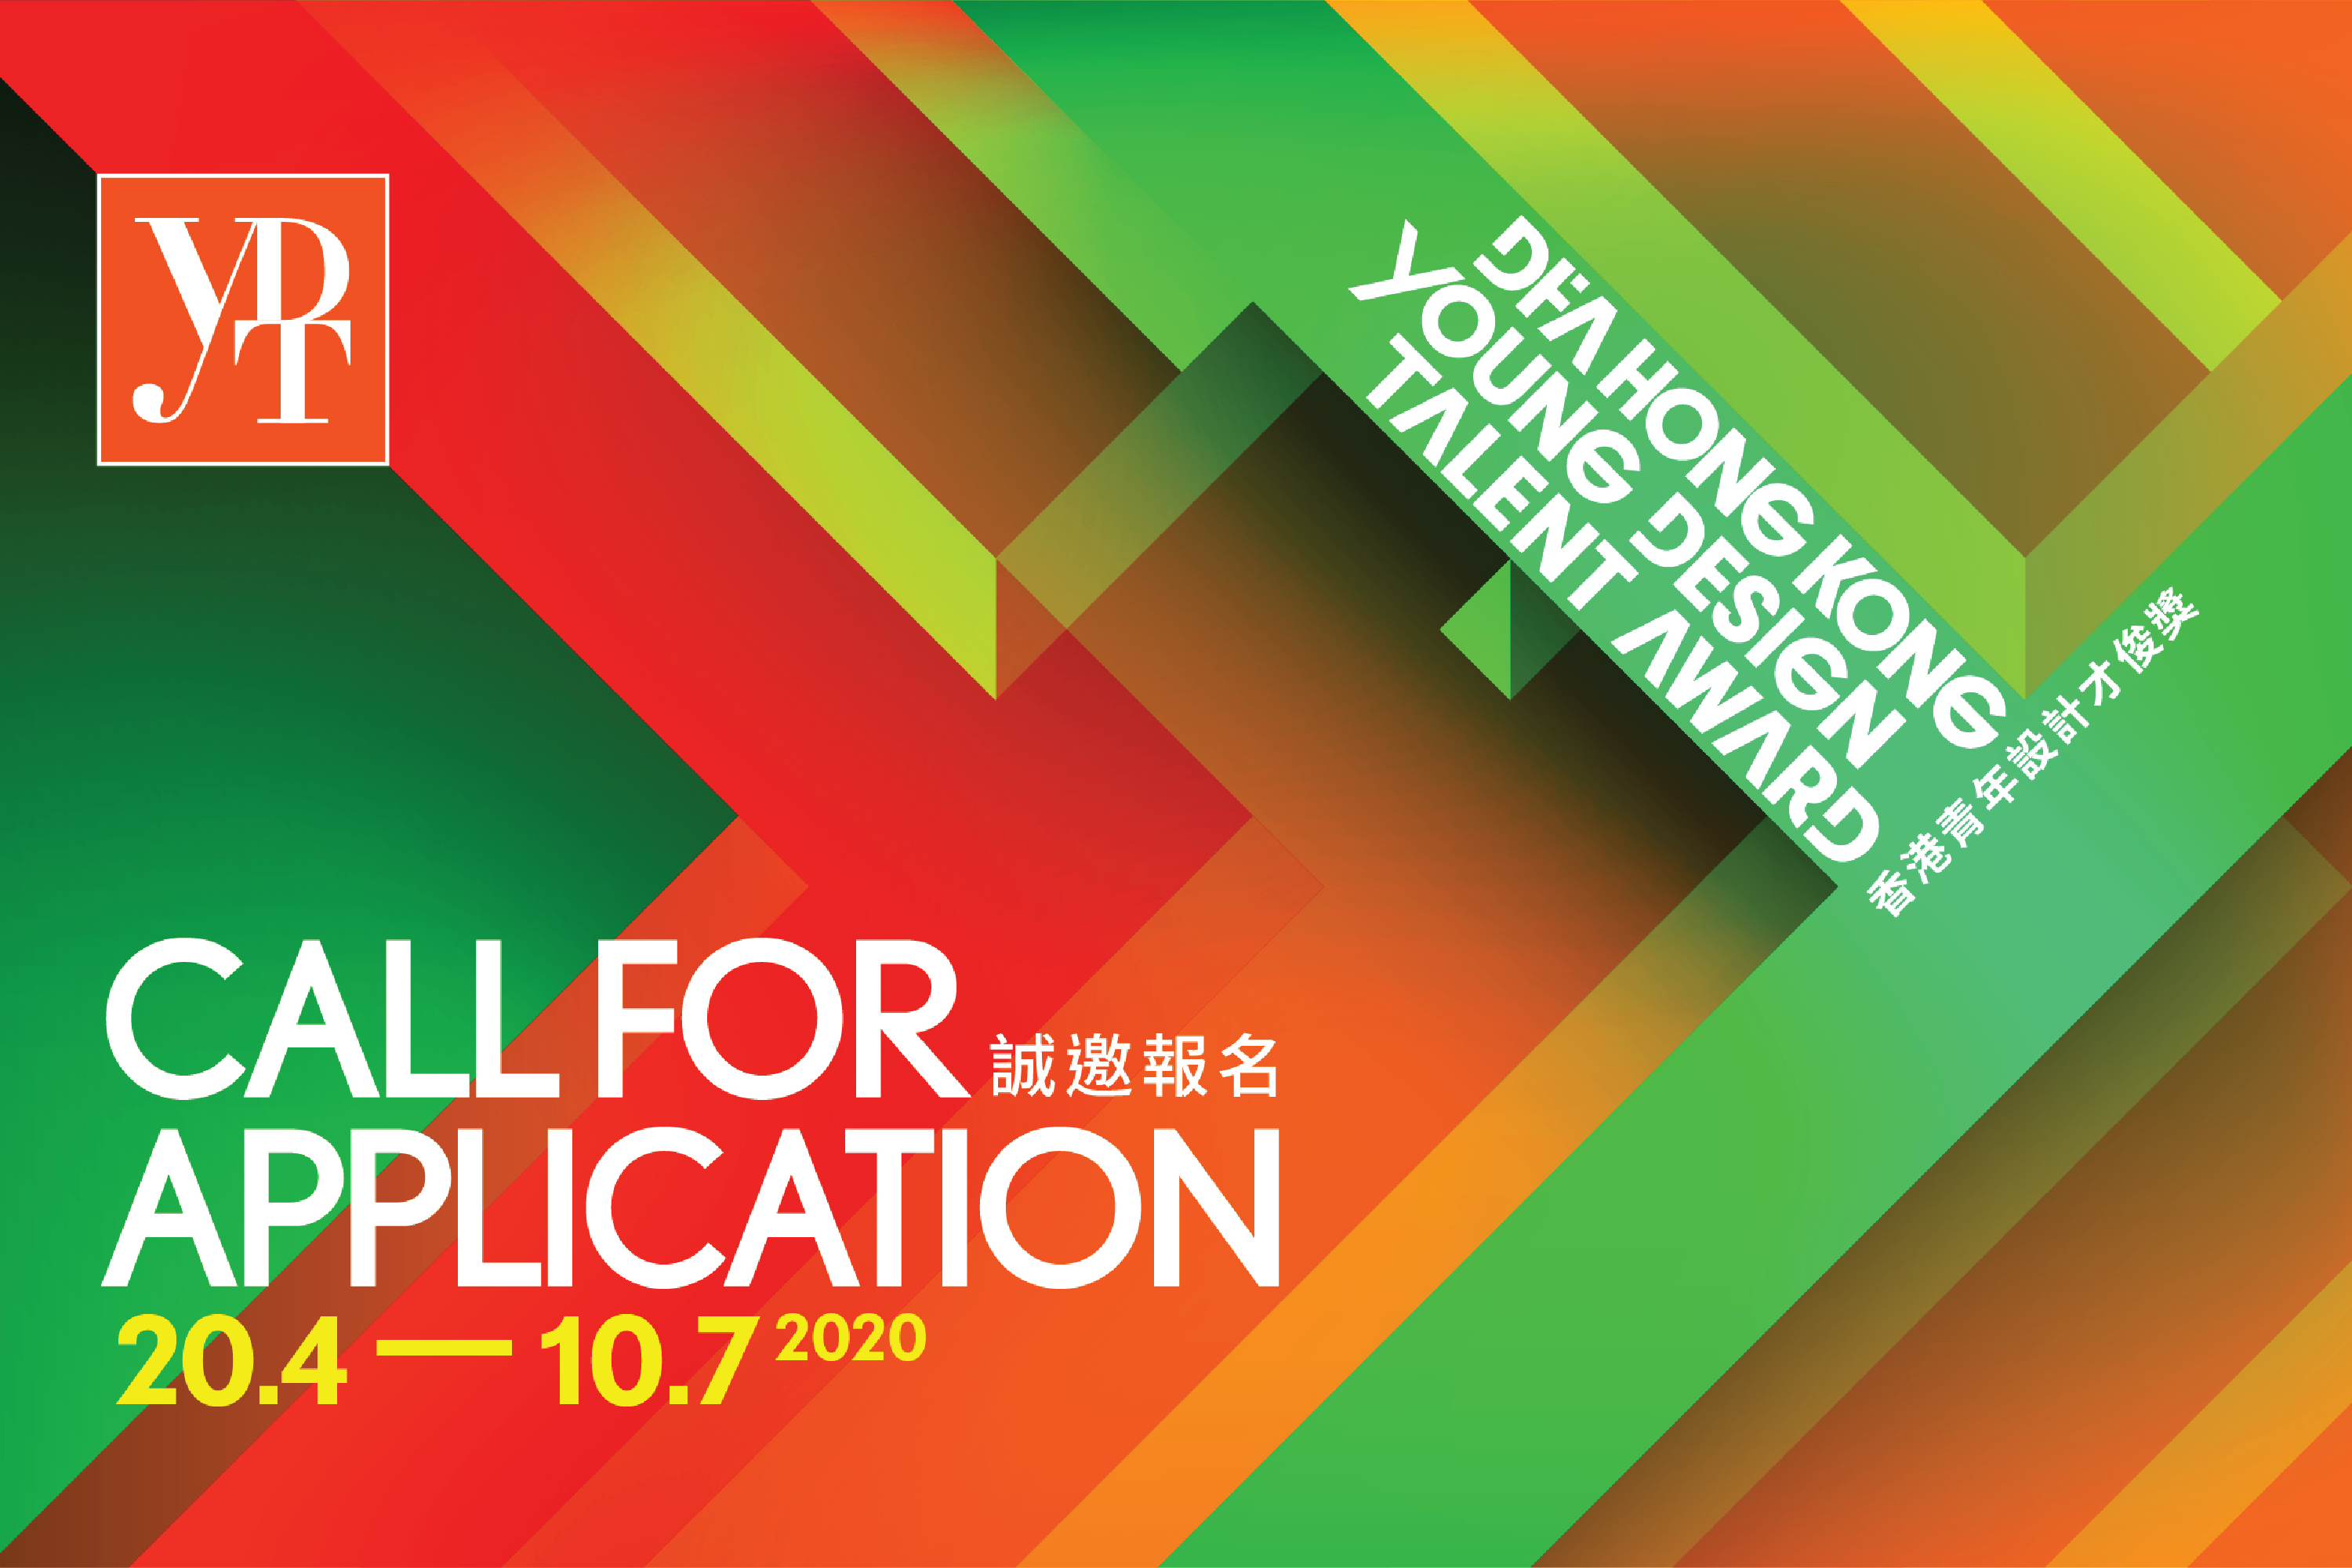 DFA Hong Kong Young Design Talent Award 2020 – Call for Application Now